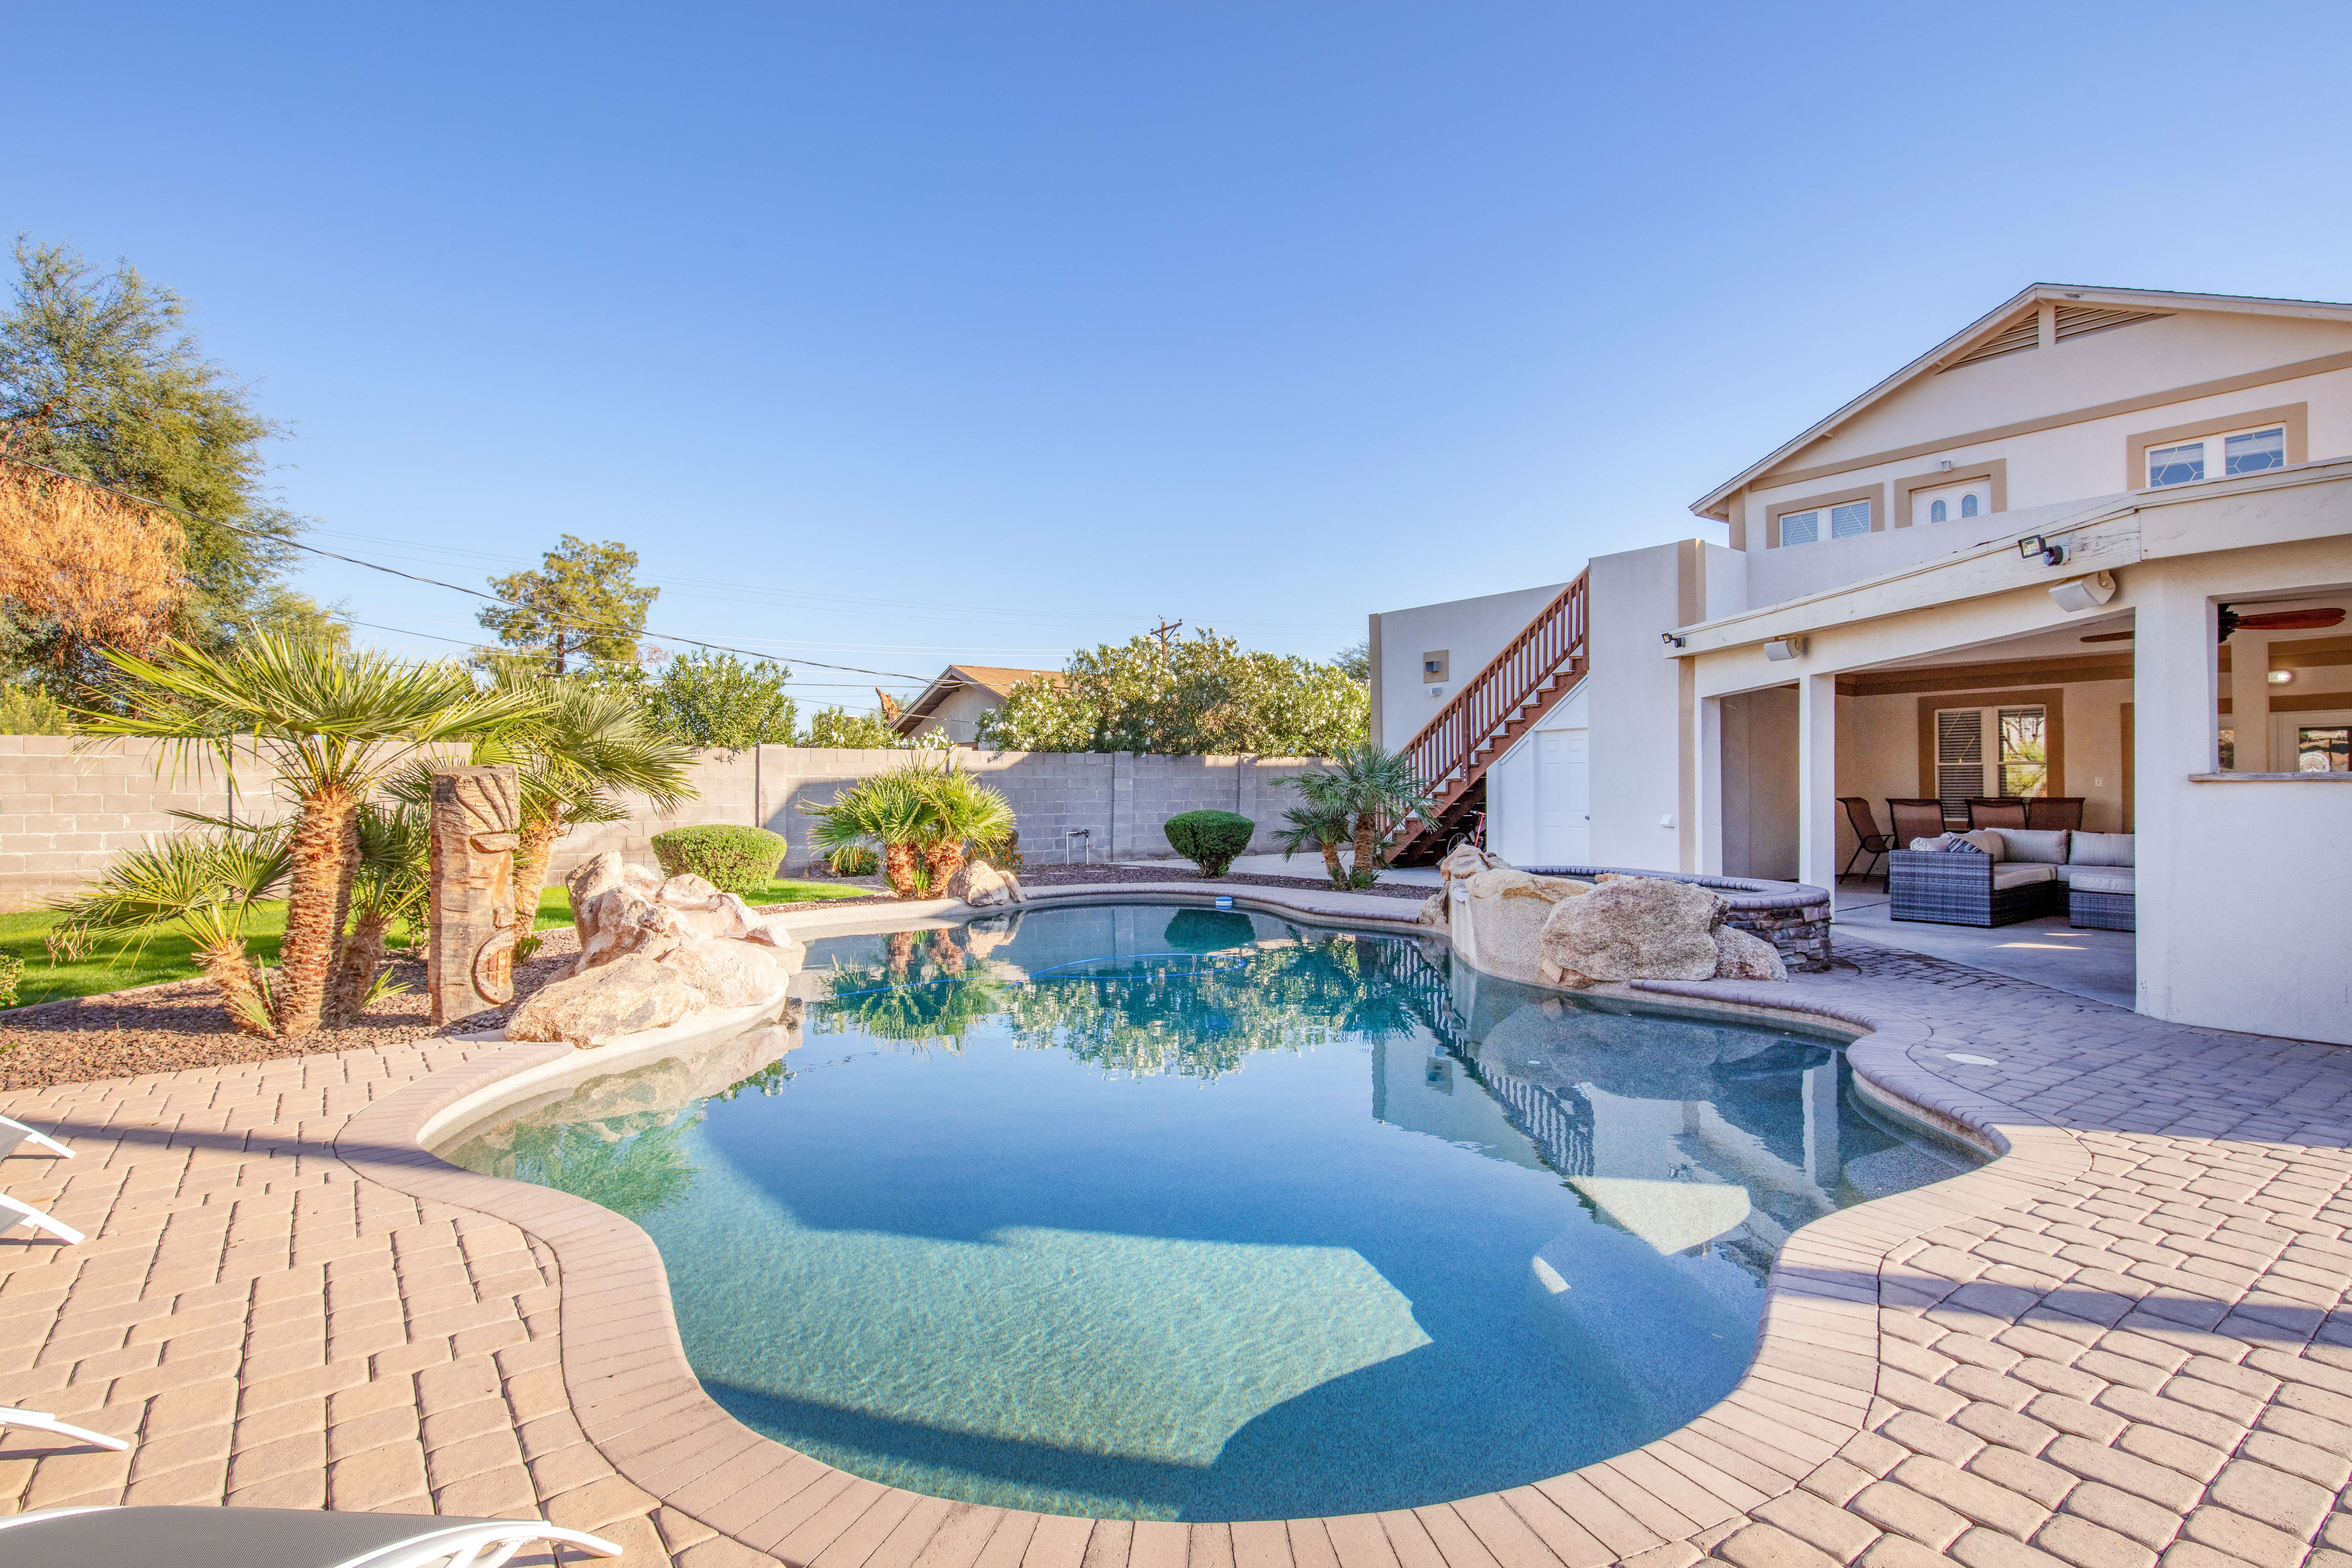 Scottsdale AZ Vacation Rental Welcome to Scottsdale!